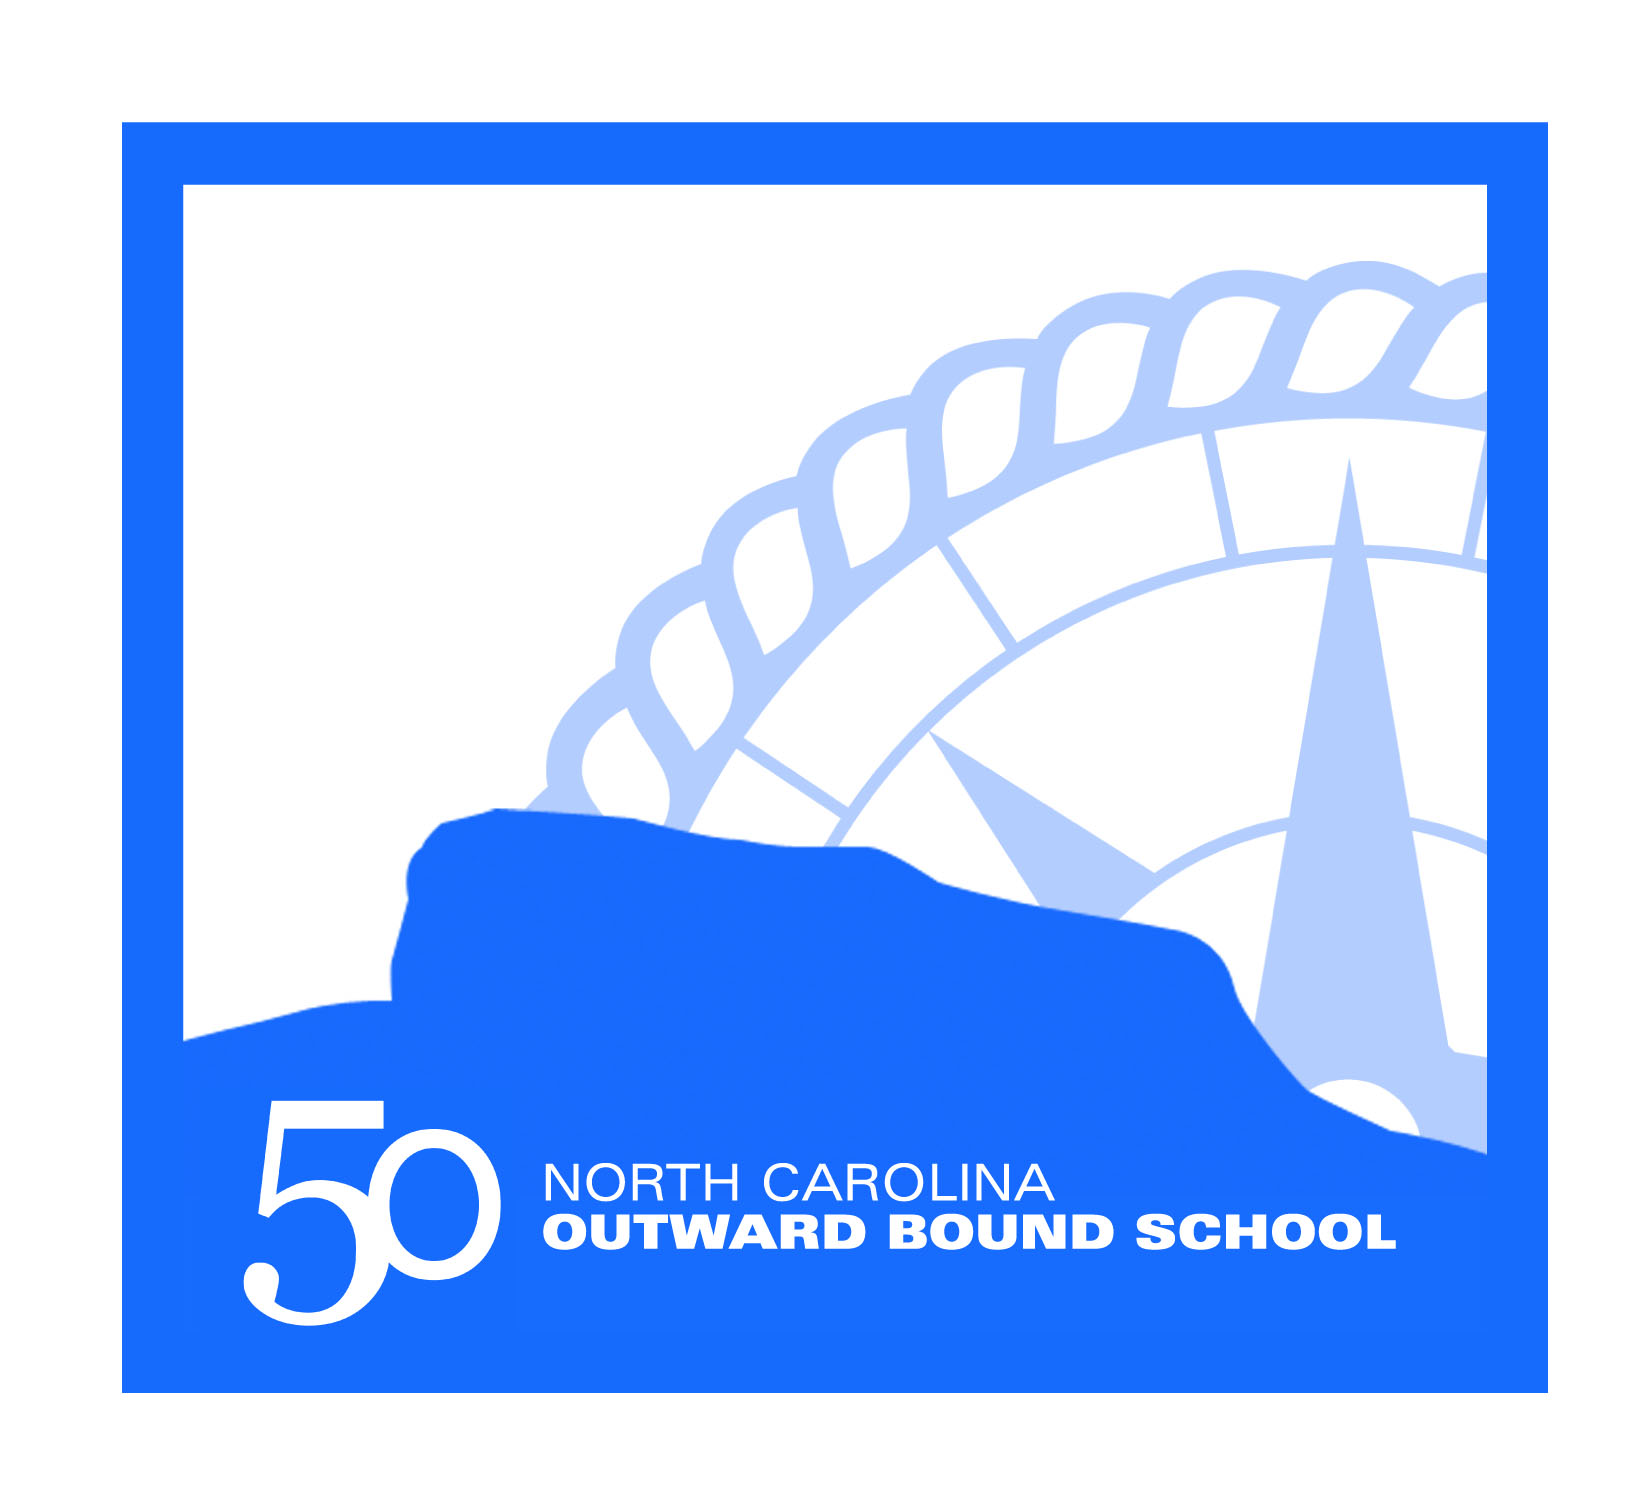 North Carolina Outward Bound School